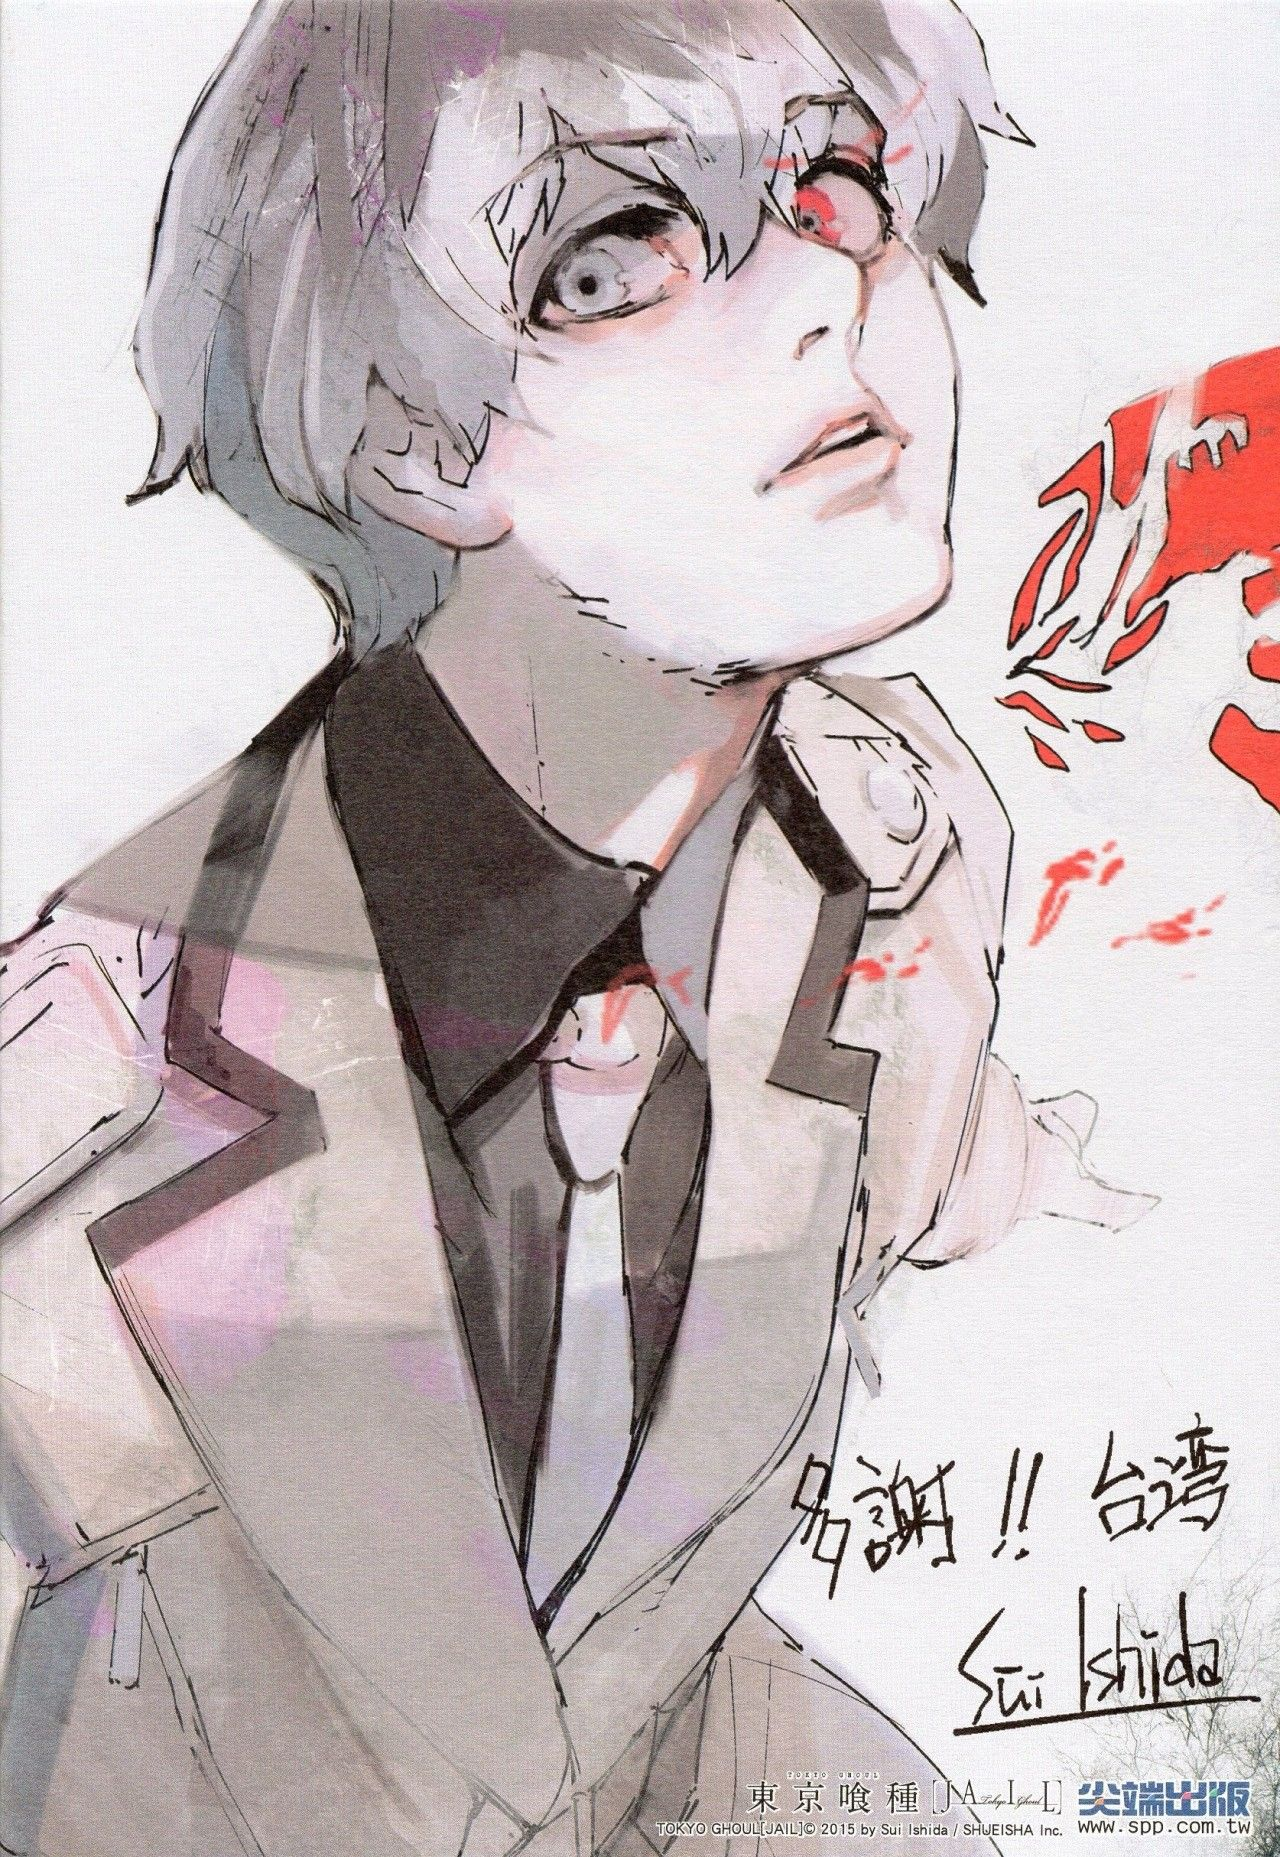 Pin by ajeq_que on TOKYO GHOUL